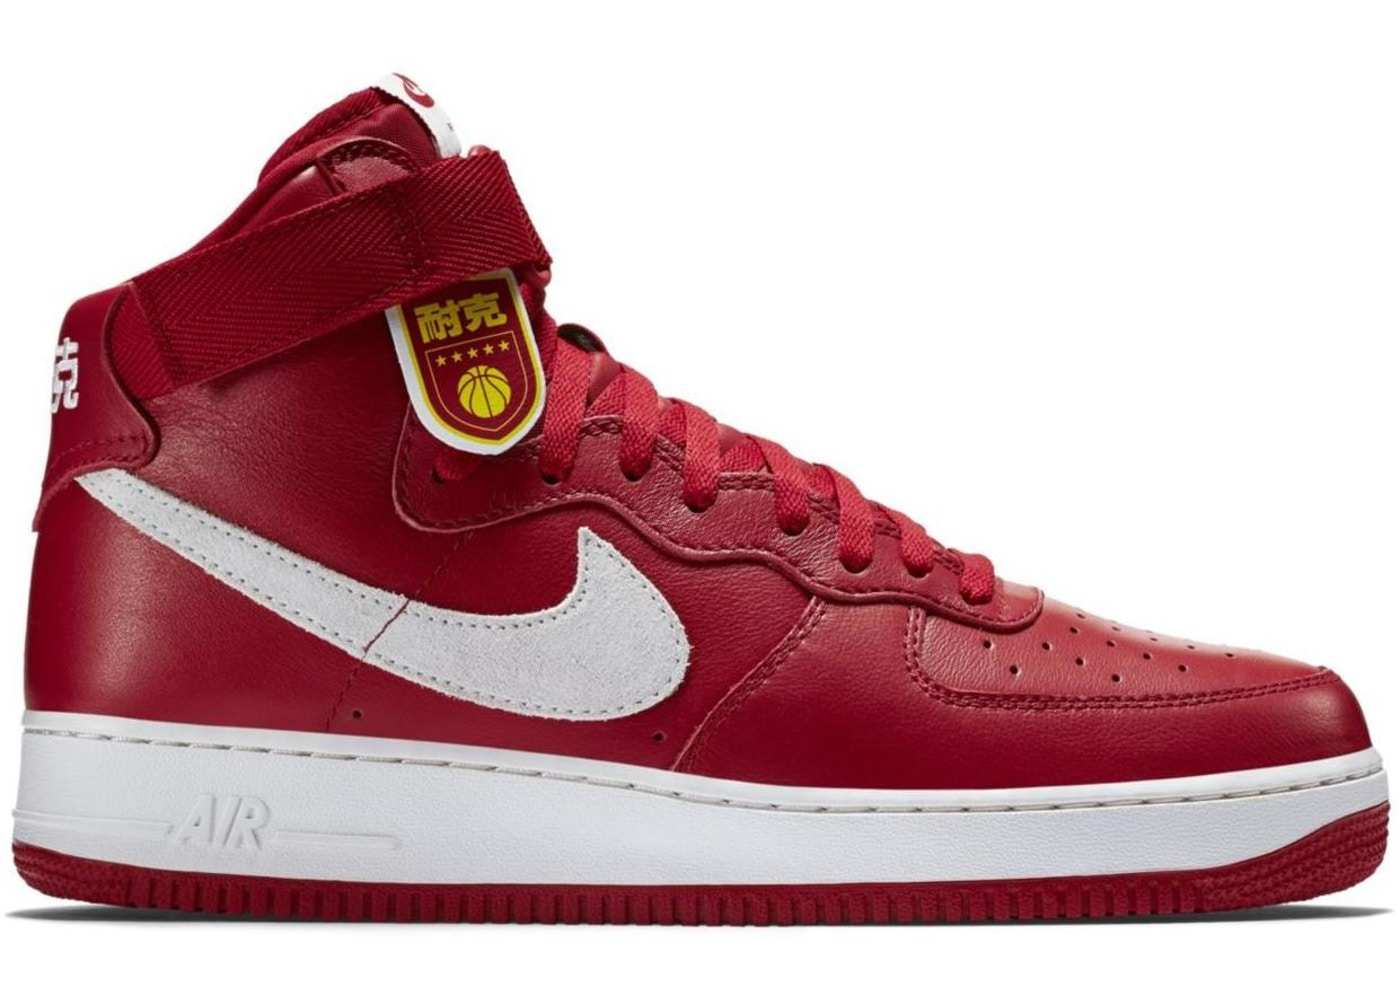 Air Force 1 High Nai Ke Gym Red (2015) by Stock X